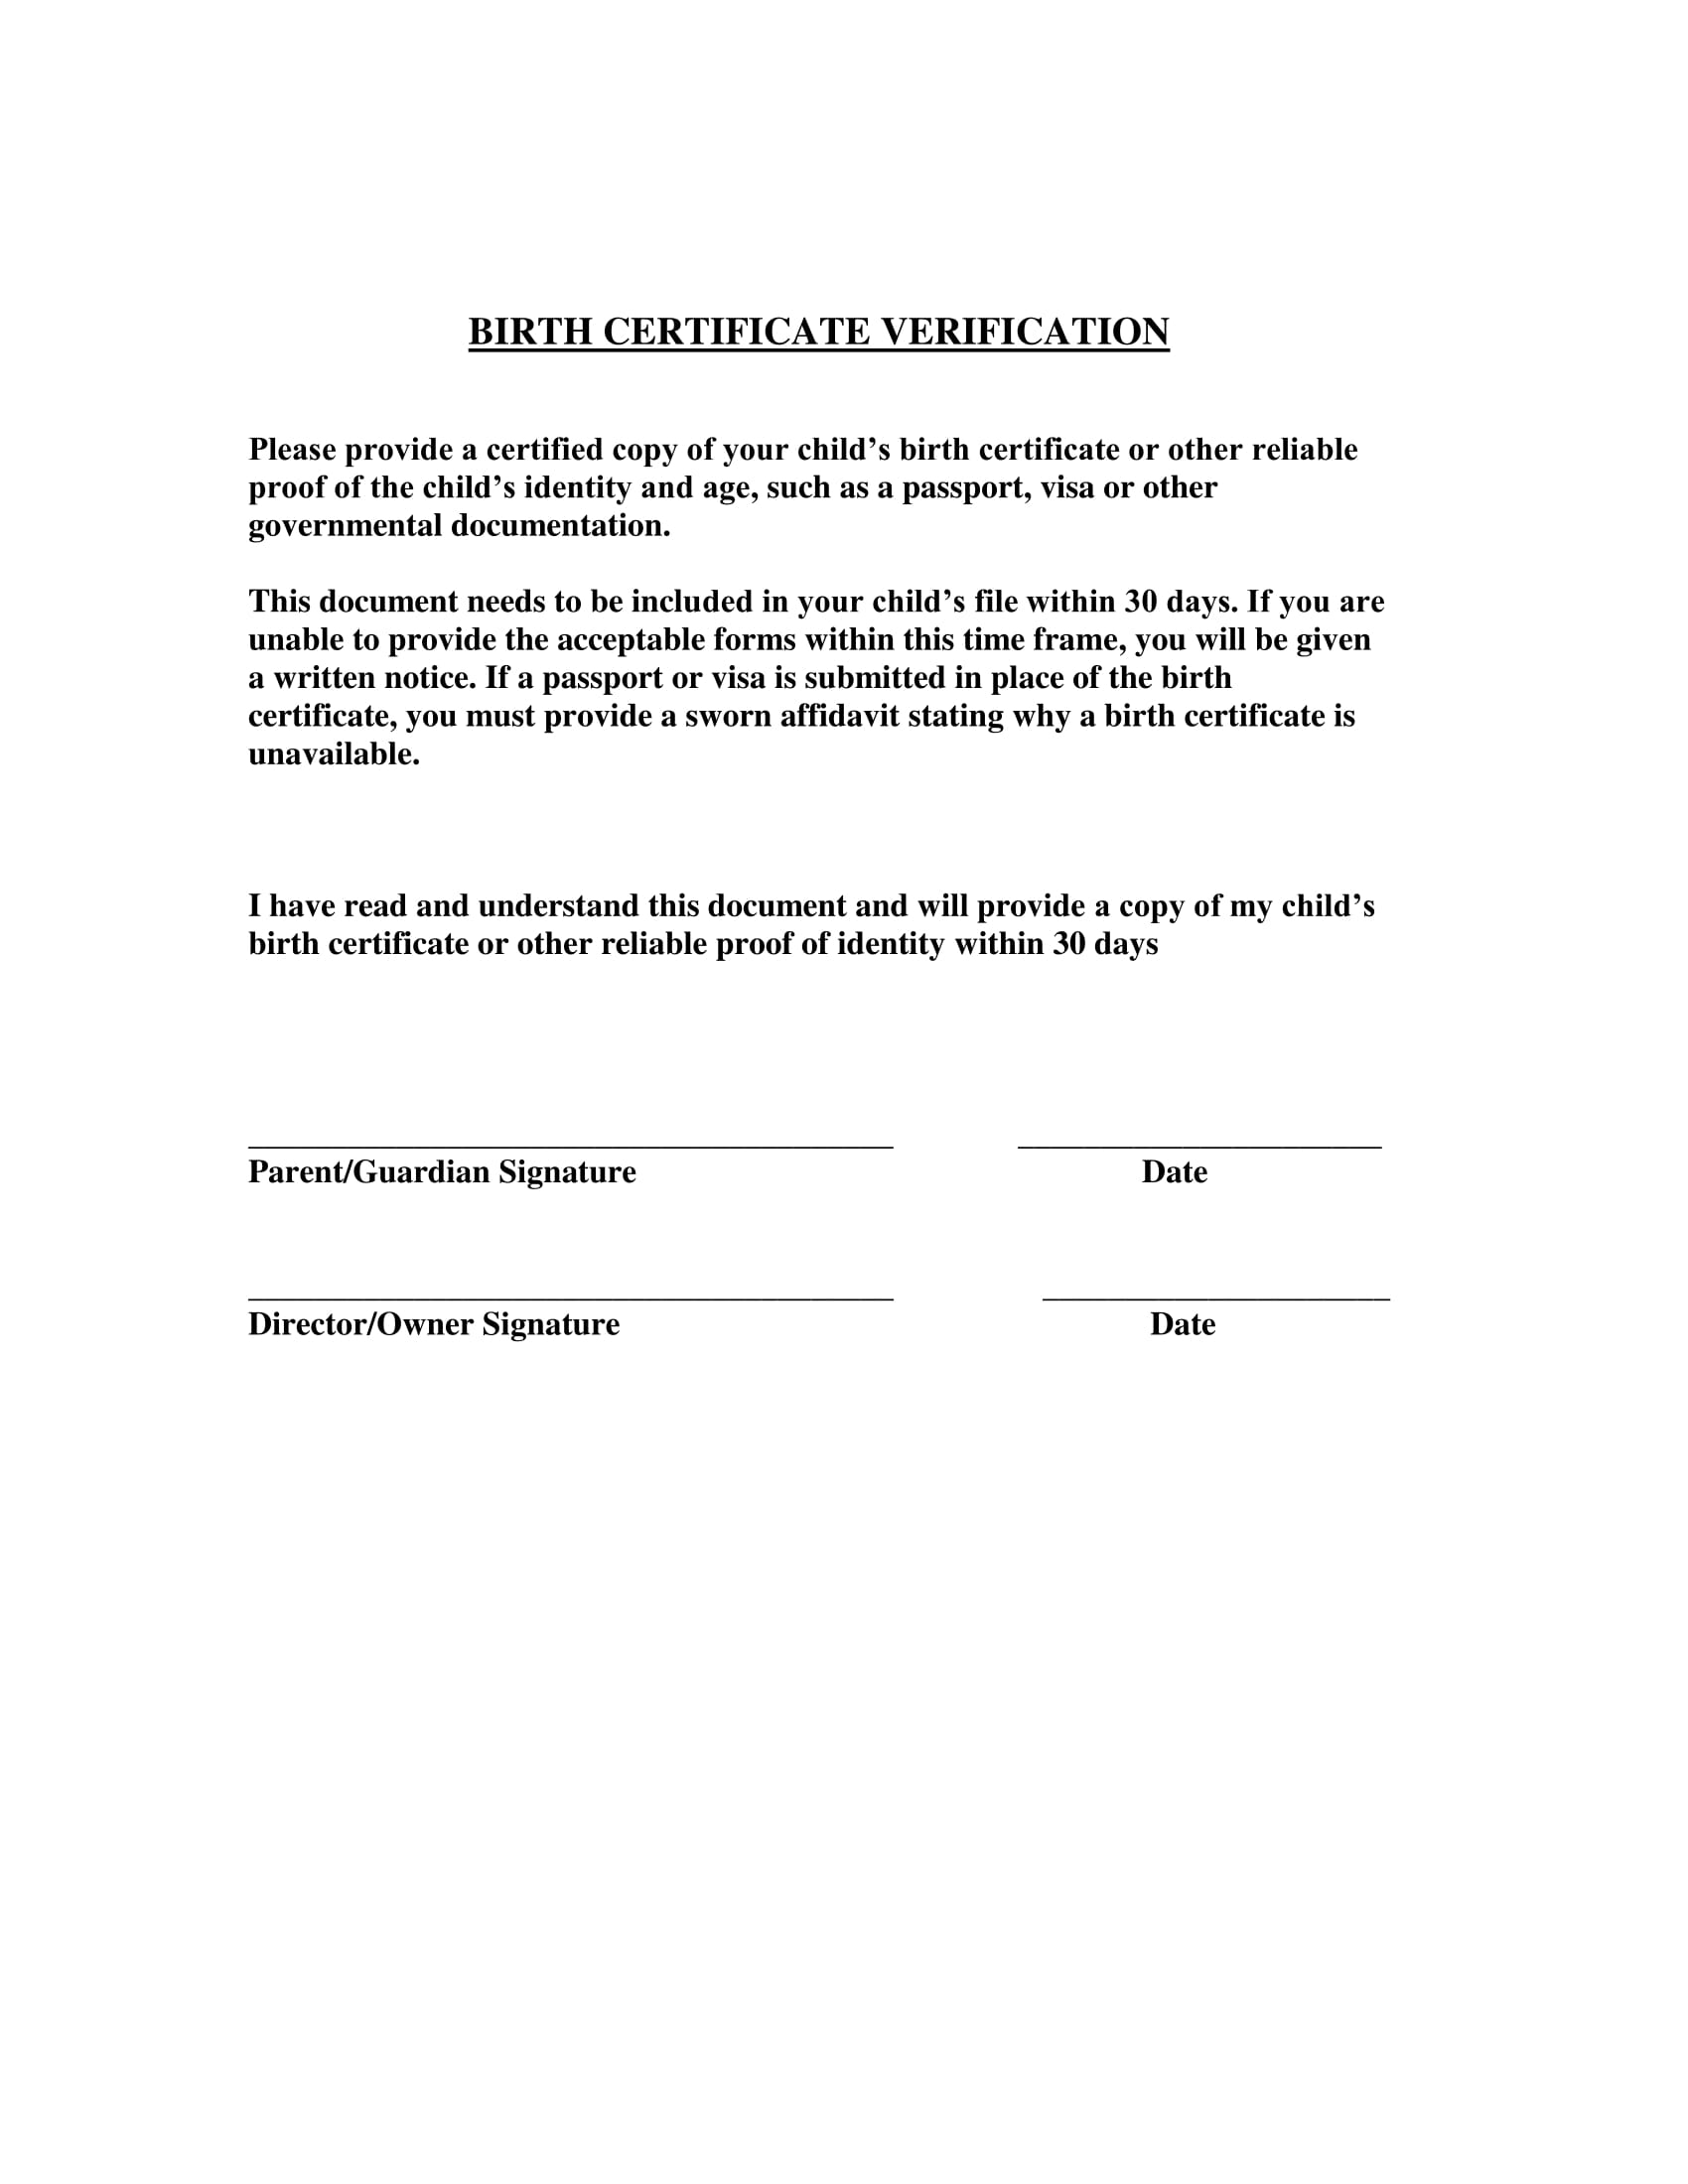 Birth verification form definition importance and purpose birth certificate verification form yadclub